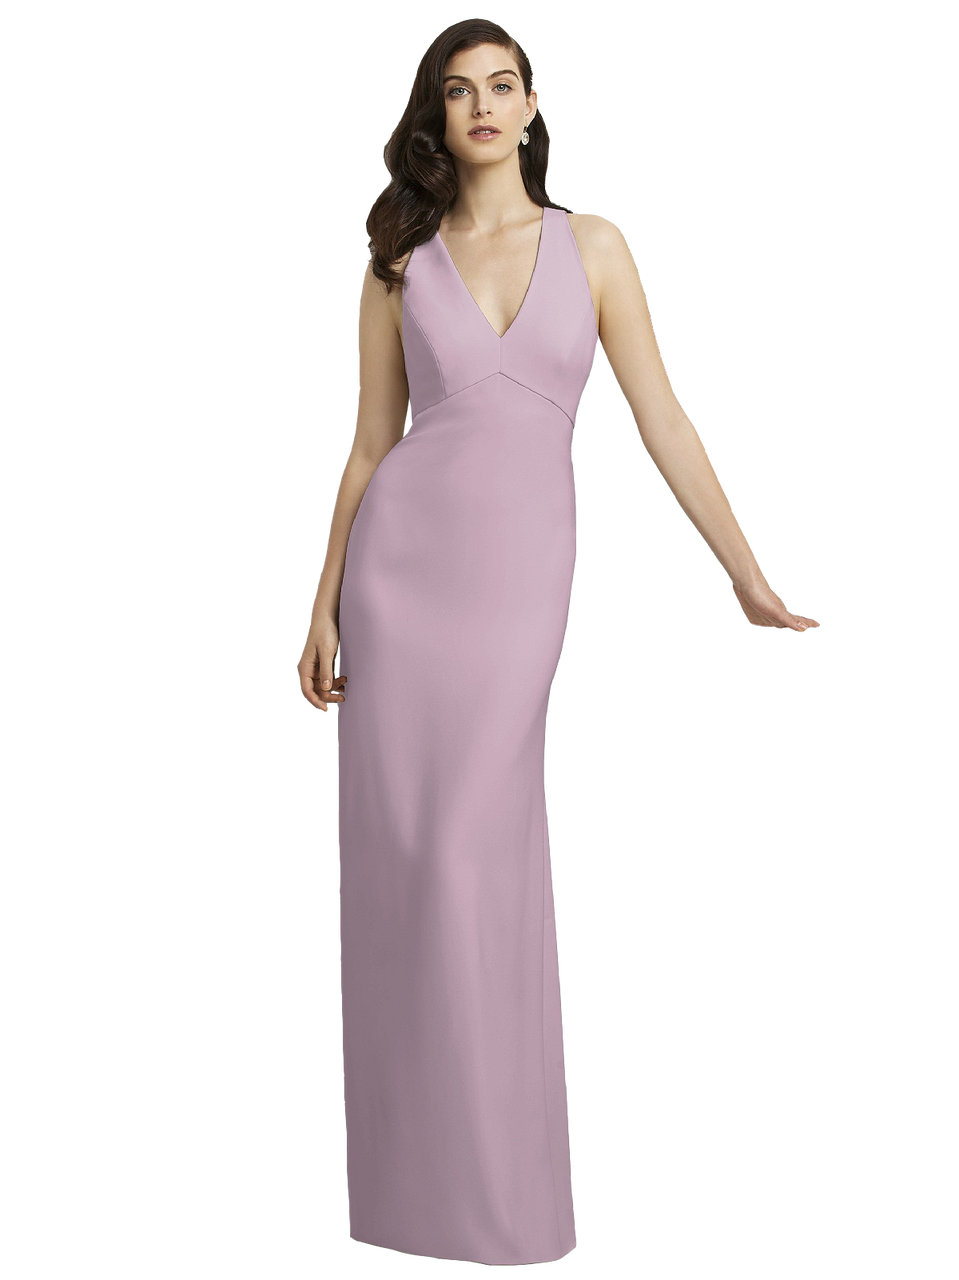 343511449e Shop The Dessy Group 2938 bridesmaid dress online at Bridals by Lori home  of Say Yes